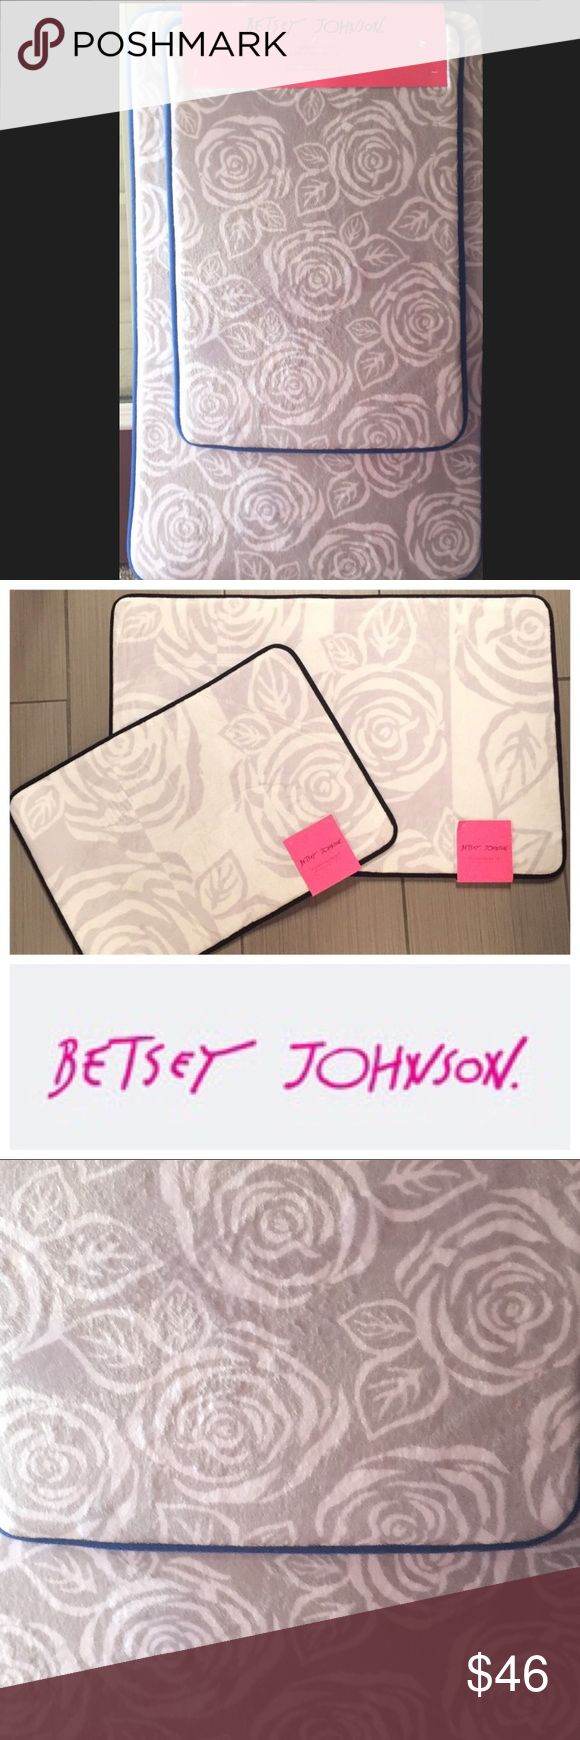 """Betsey Johnson Garden Rose Grey & Blue Bath Mats NWT Betsey Johnson Garden Rose Grey & Blue Memory Foam Bath Mats - luxurious gray roses with blue border. 🌸  Lush Memory Foam,  Soft and Absorbent Skid Resistant Backing - 100% Polyester.  Picture #2 is just to show the mats separately - the roaring roses mats are a separate listing. Color is grey roses with a blue border 🌸 Machine washable - tumble dry. 17"""" x 24"""" - 21"""" x 34"""" Betsey Johnson Other"""